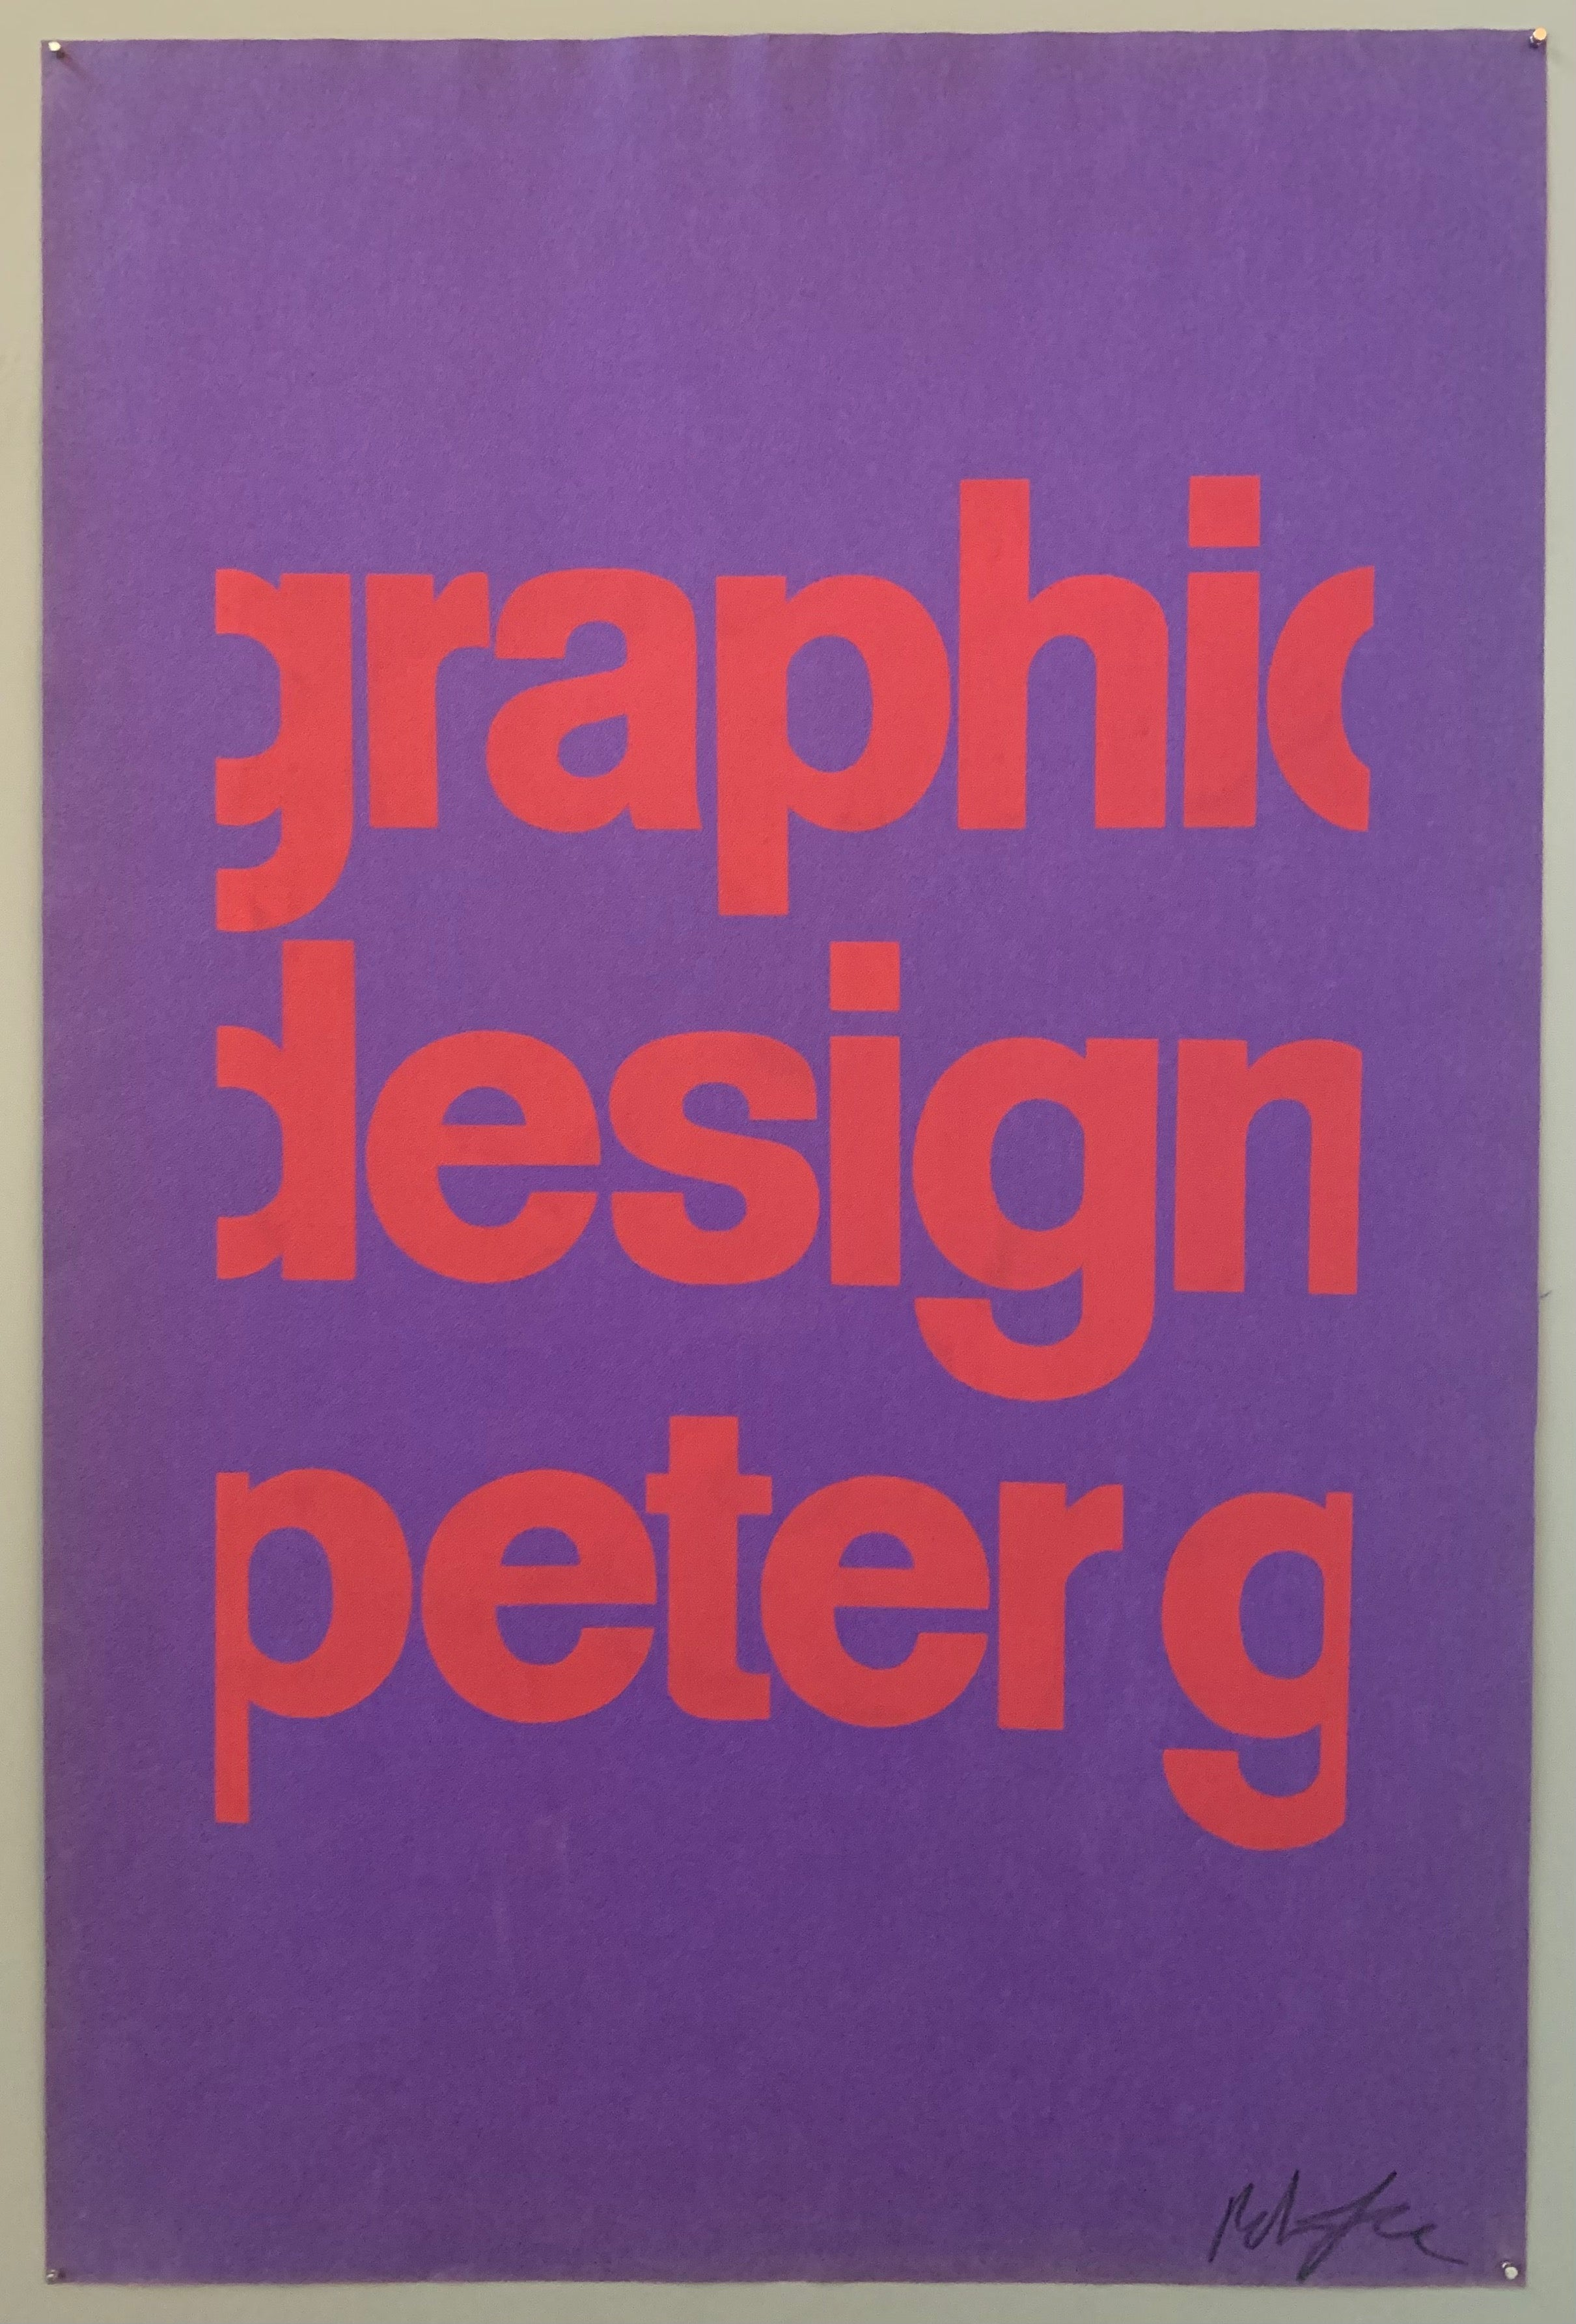 Purple poster with pink font saying graphic design peter g